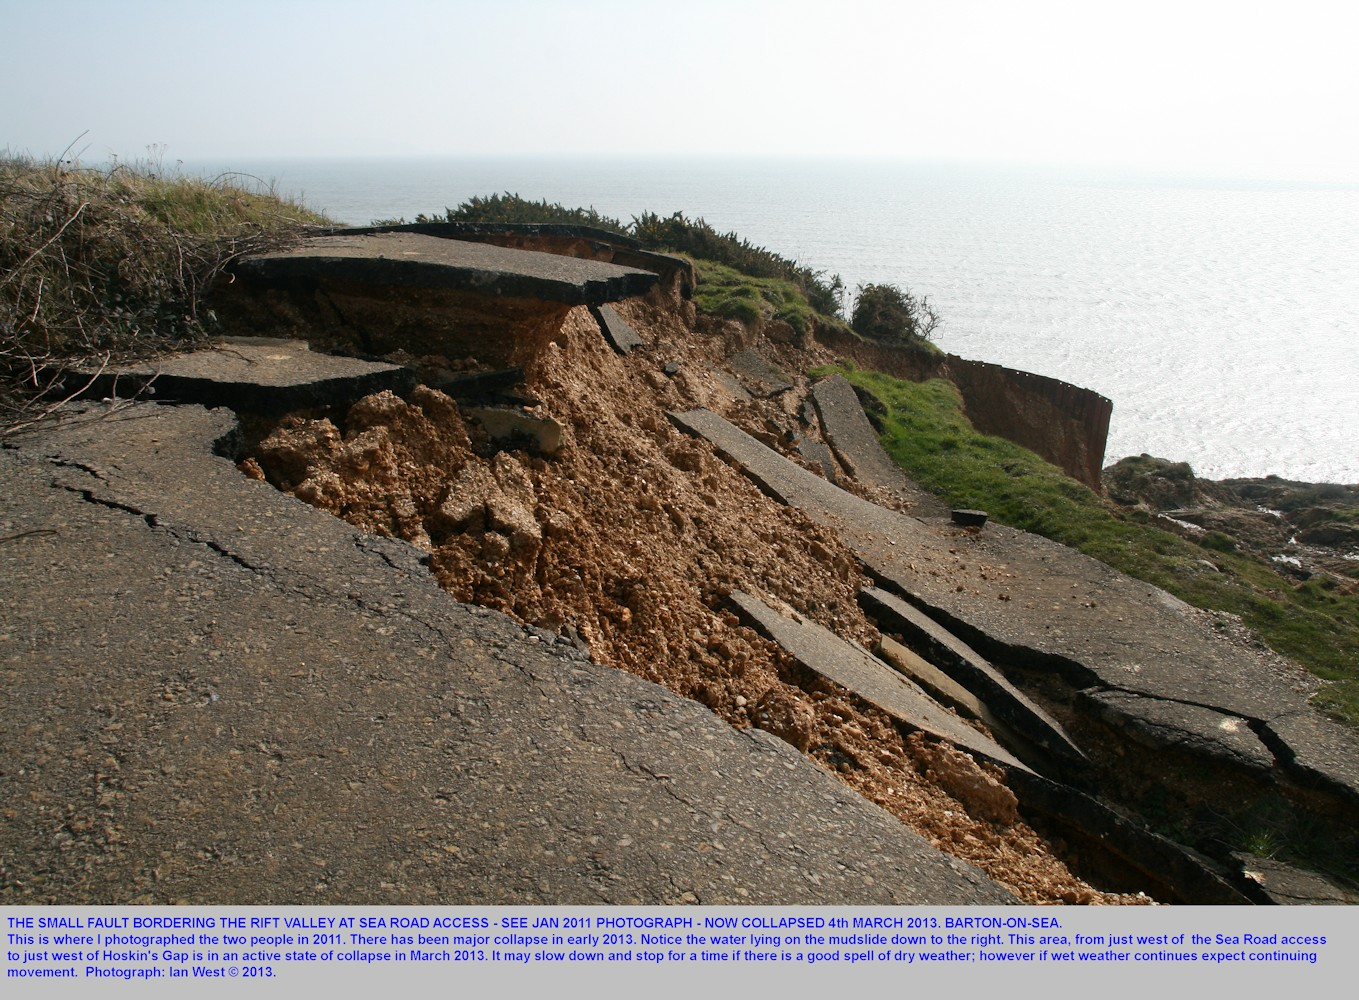 Collapse of the roadway at the small graben at Sea Road Access, Barton-on-Sea, Hampshire, 4th March 2013